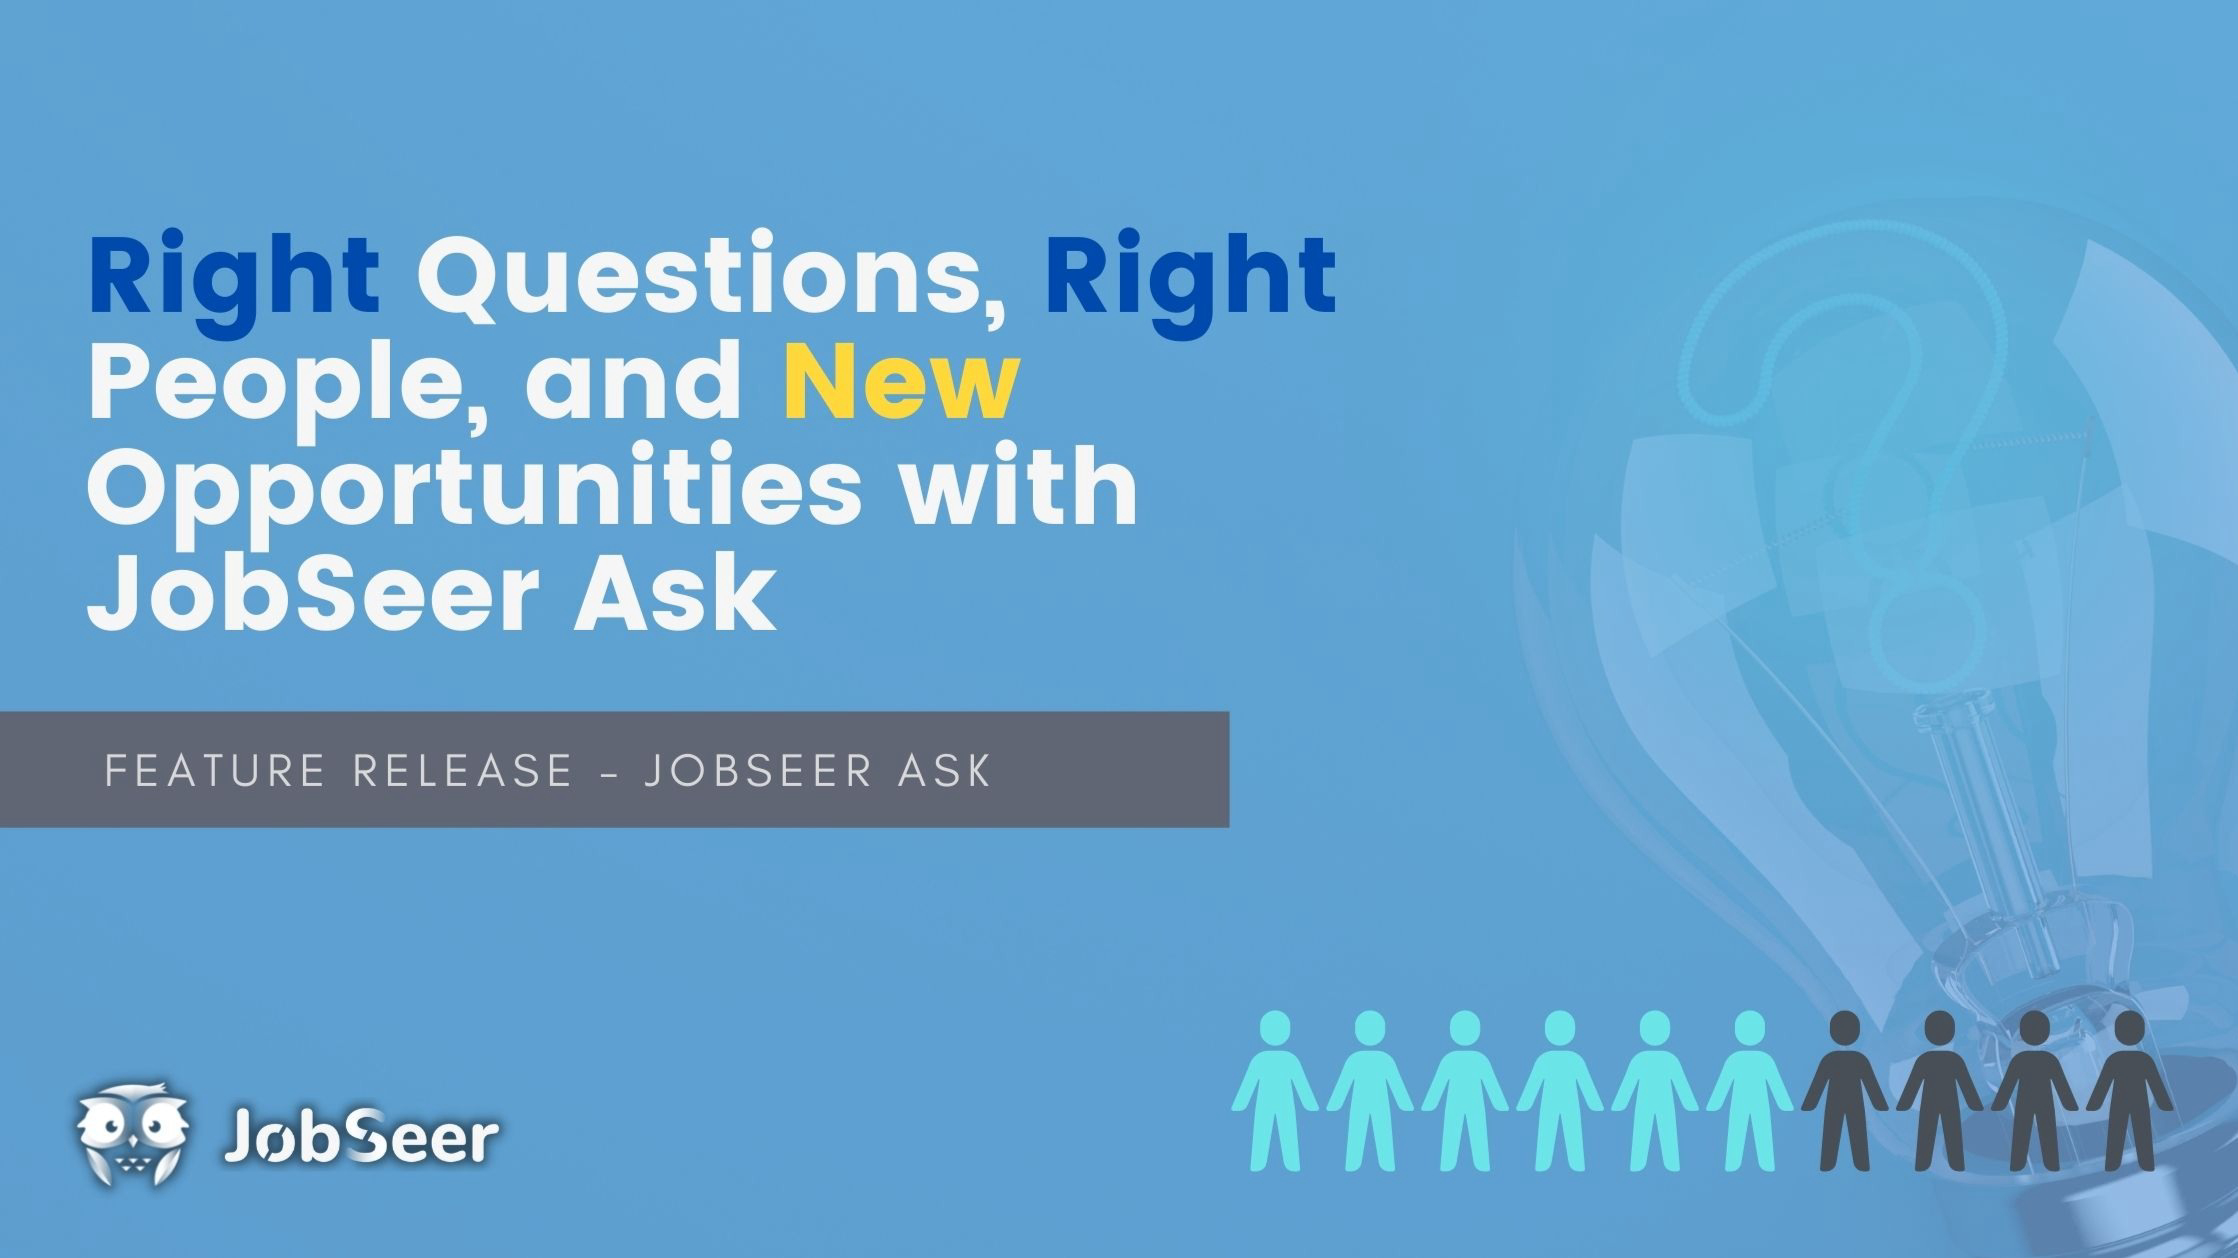 right-questions-right-people-and-new-opportunities-with-jobseer-ask